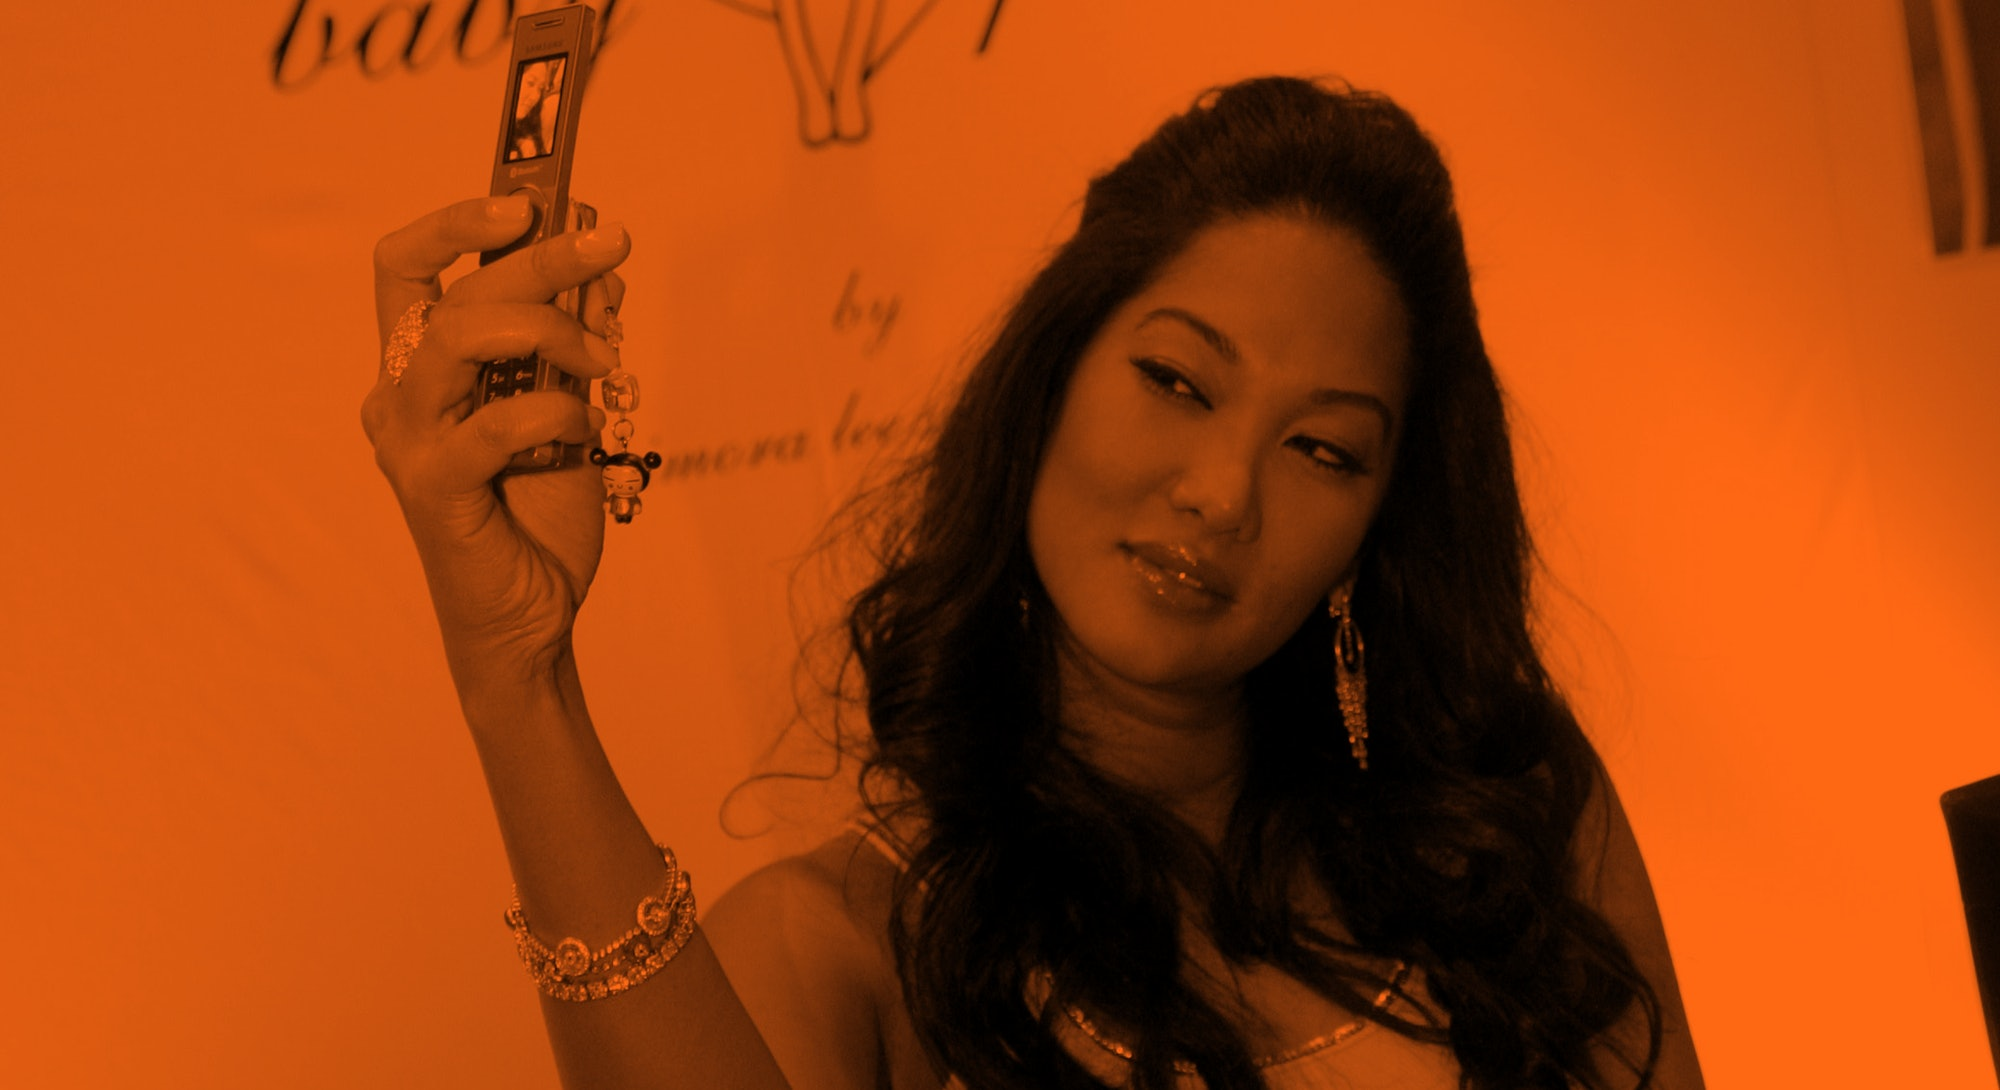 Kimora Lee Simmons during Kimora Lee Simmons Appears at Macy's to Sign Autographs and Promote her Ne...